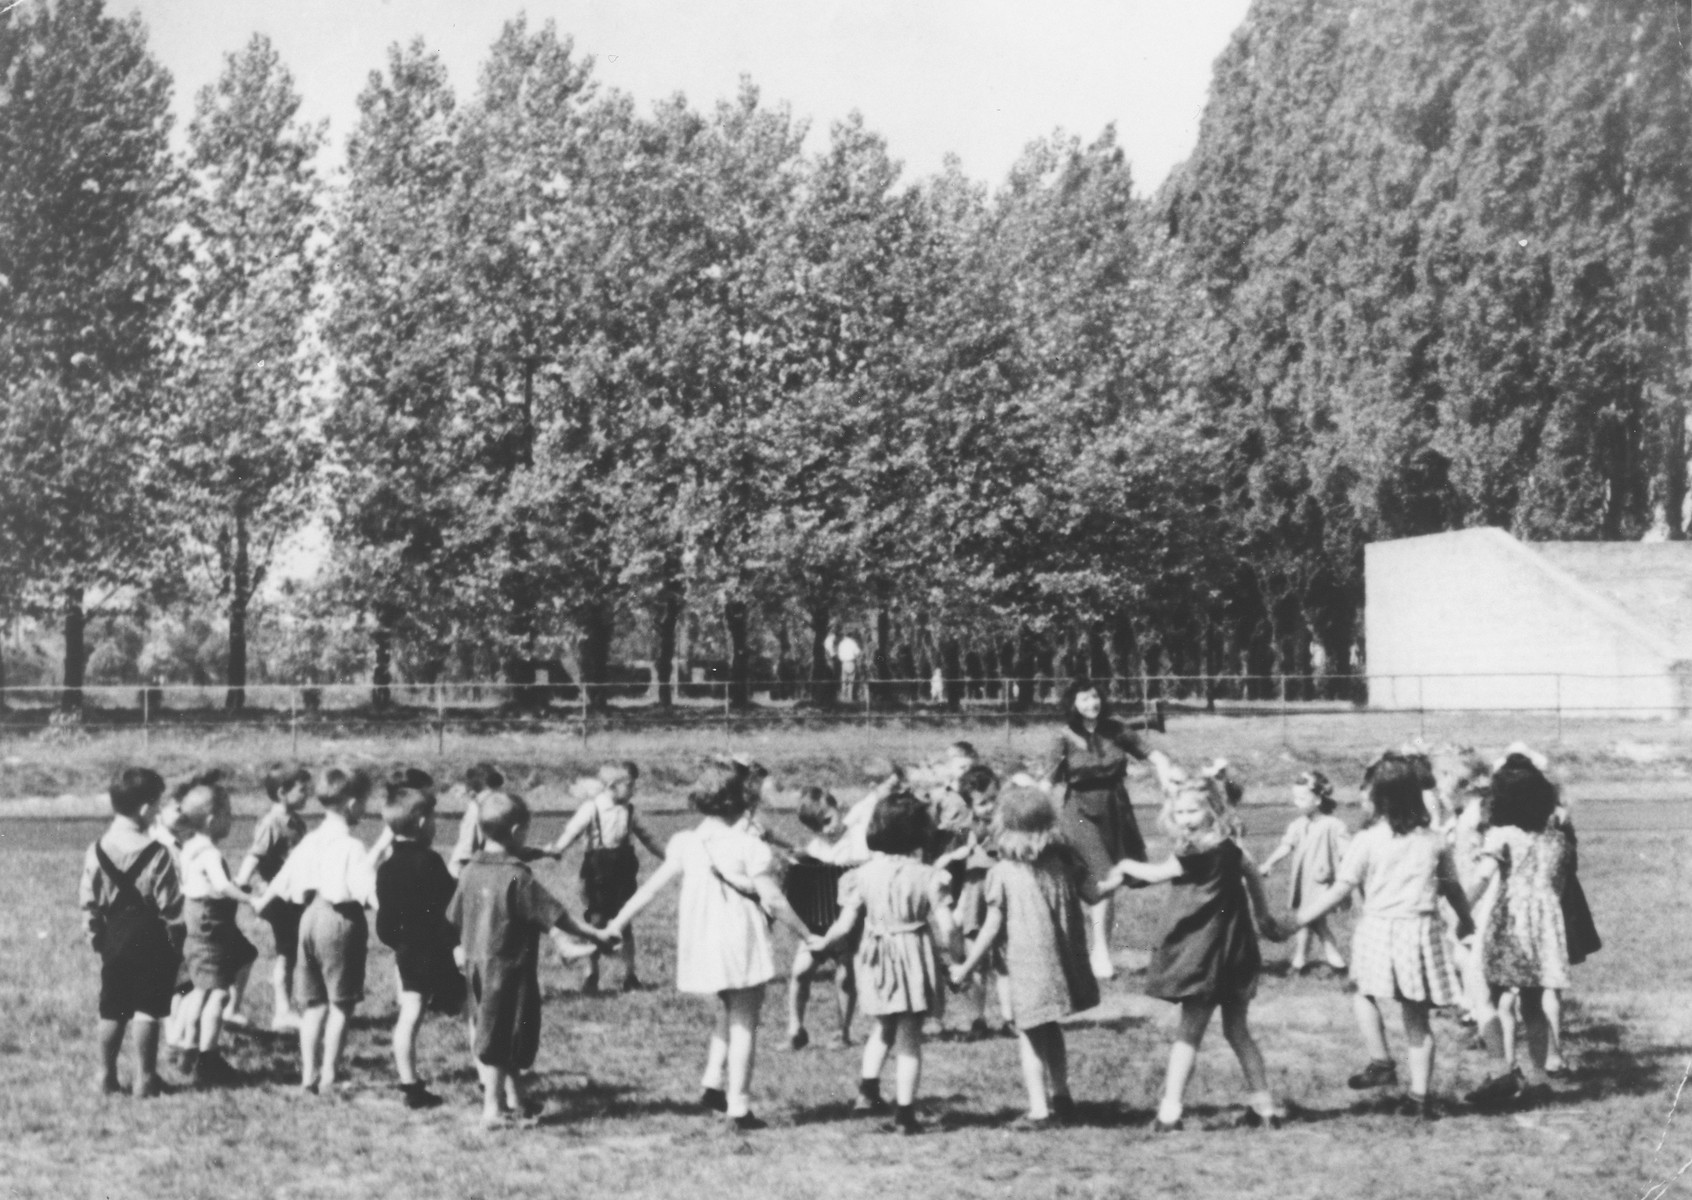 Preschoolers in the Mariendorf displaced persons camp dance in a circle.  Those pictured include Maya Rosenfeld (later Freed Brown).